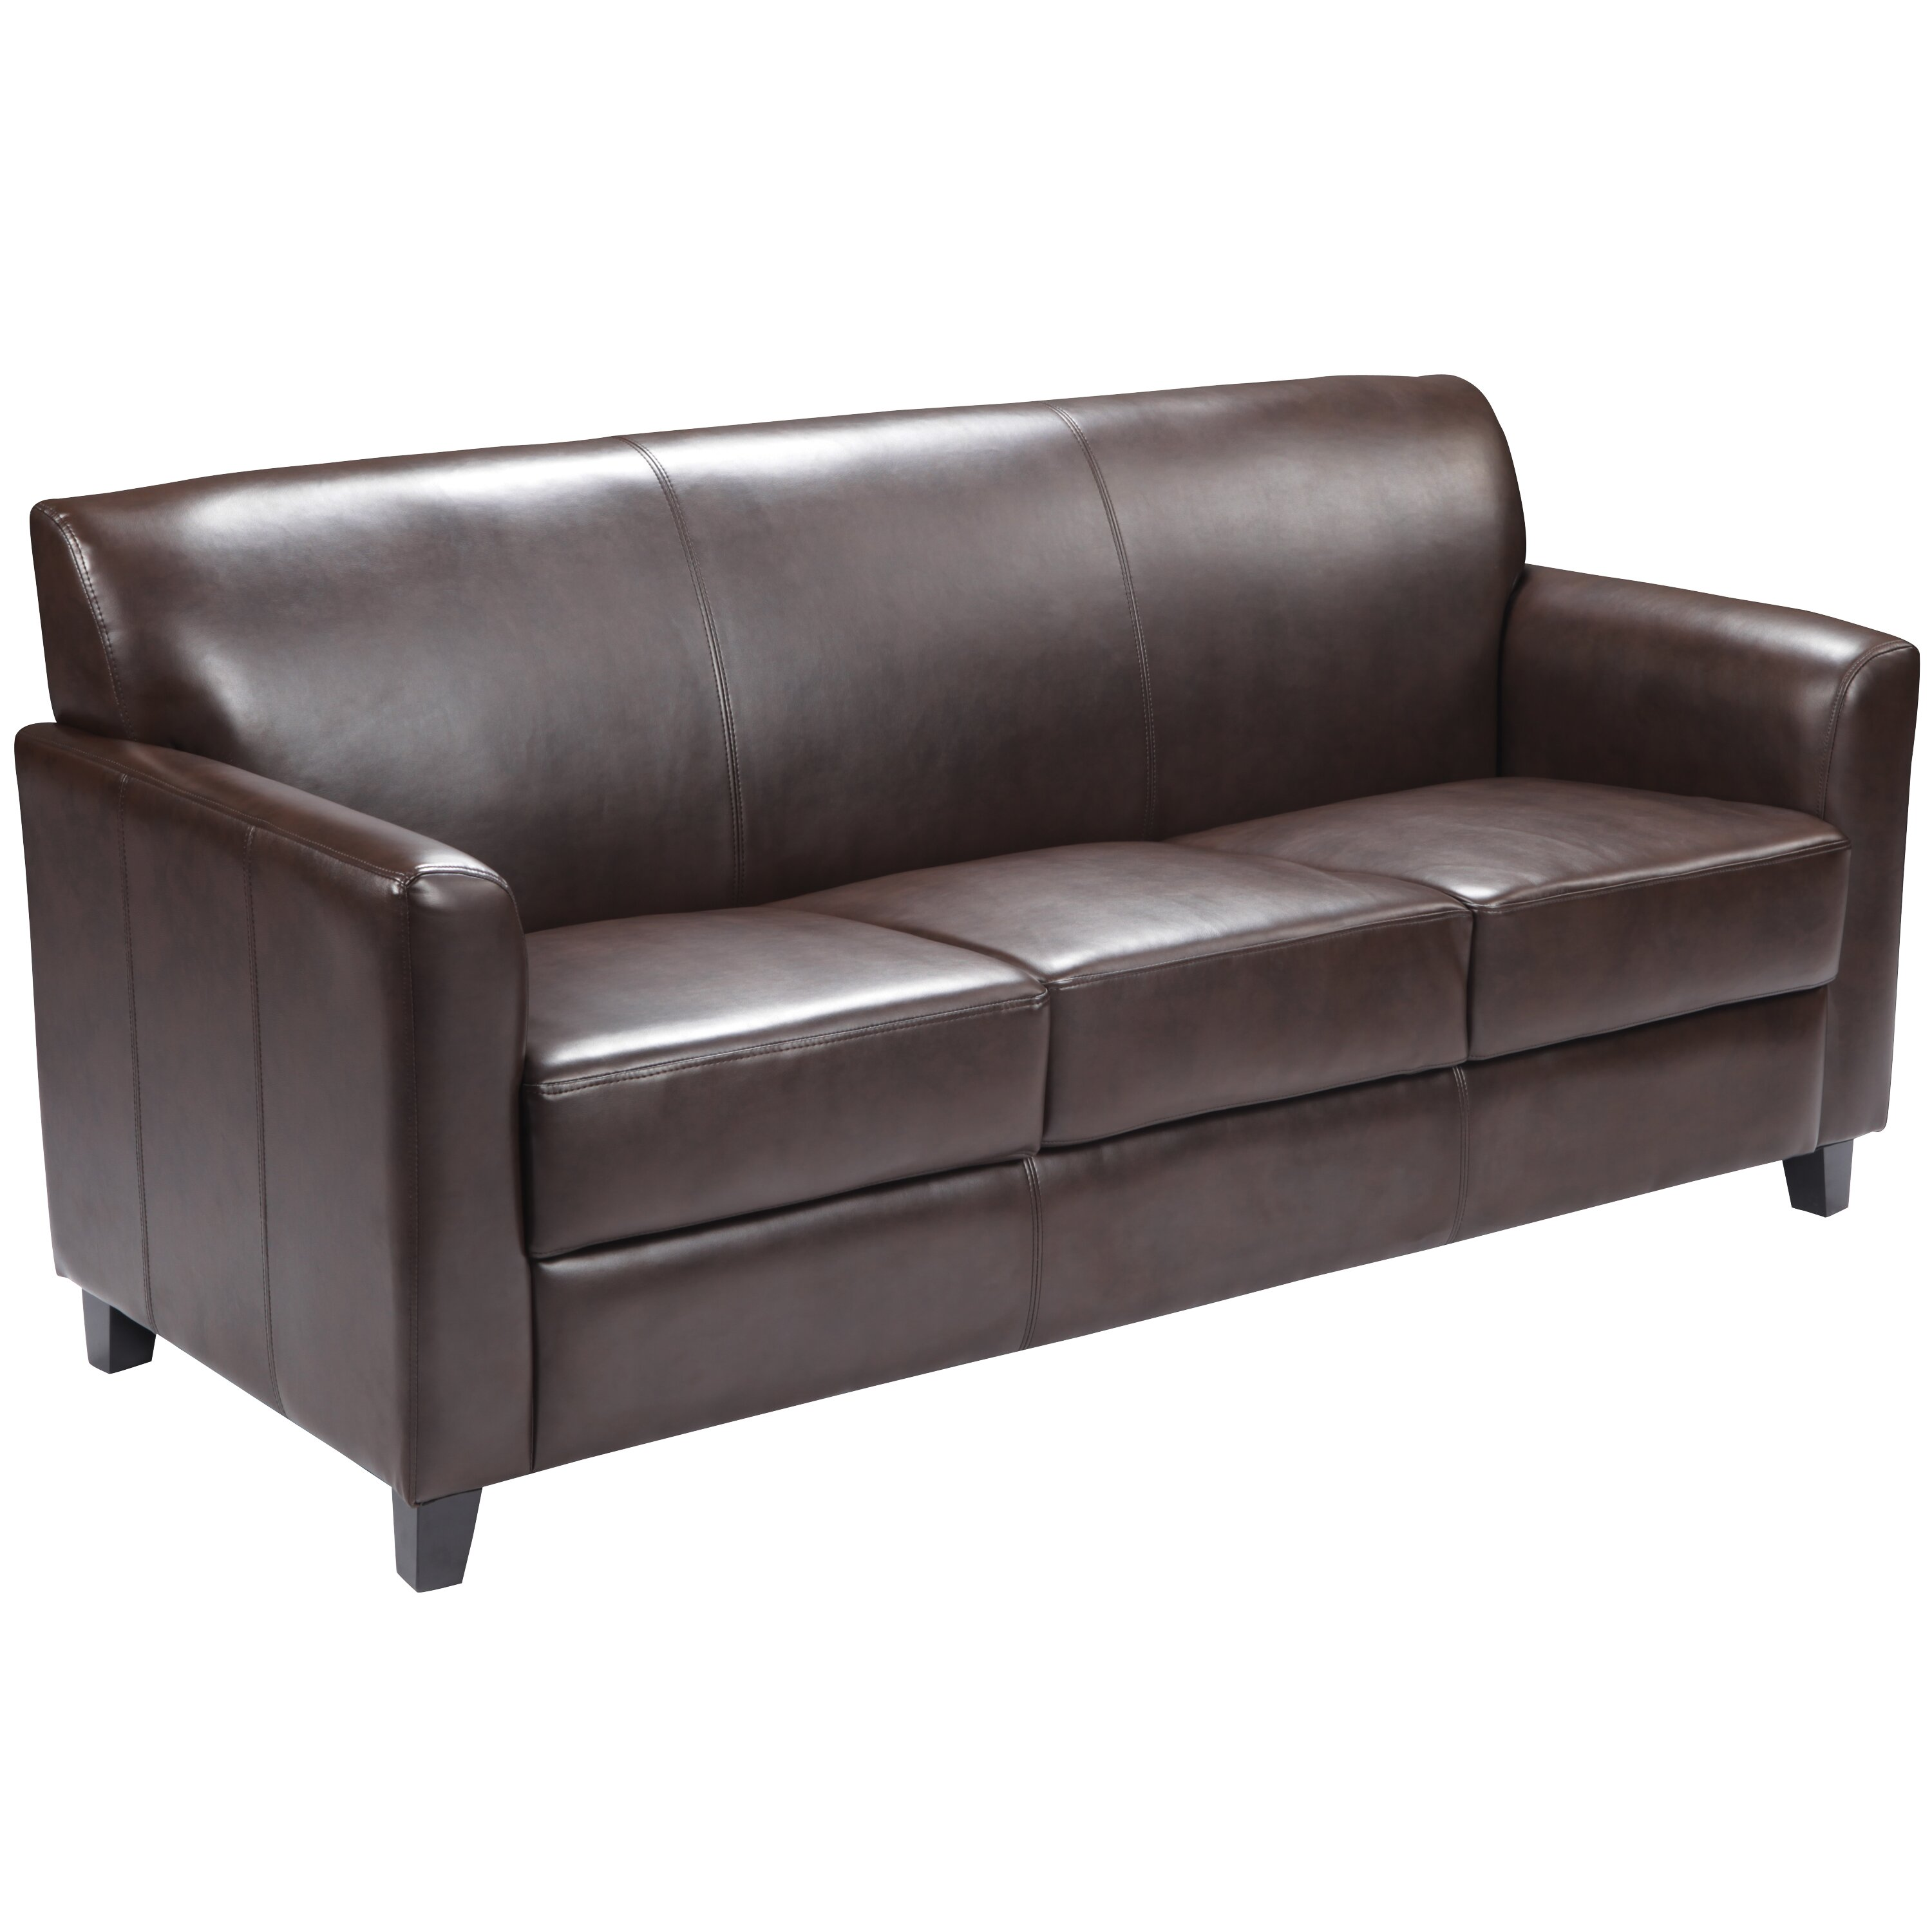 Flash furniture hercules diplomat series leather sofa for Couch furniture